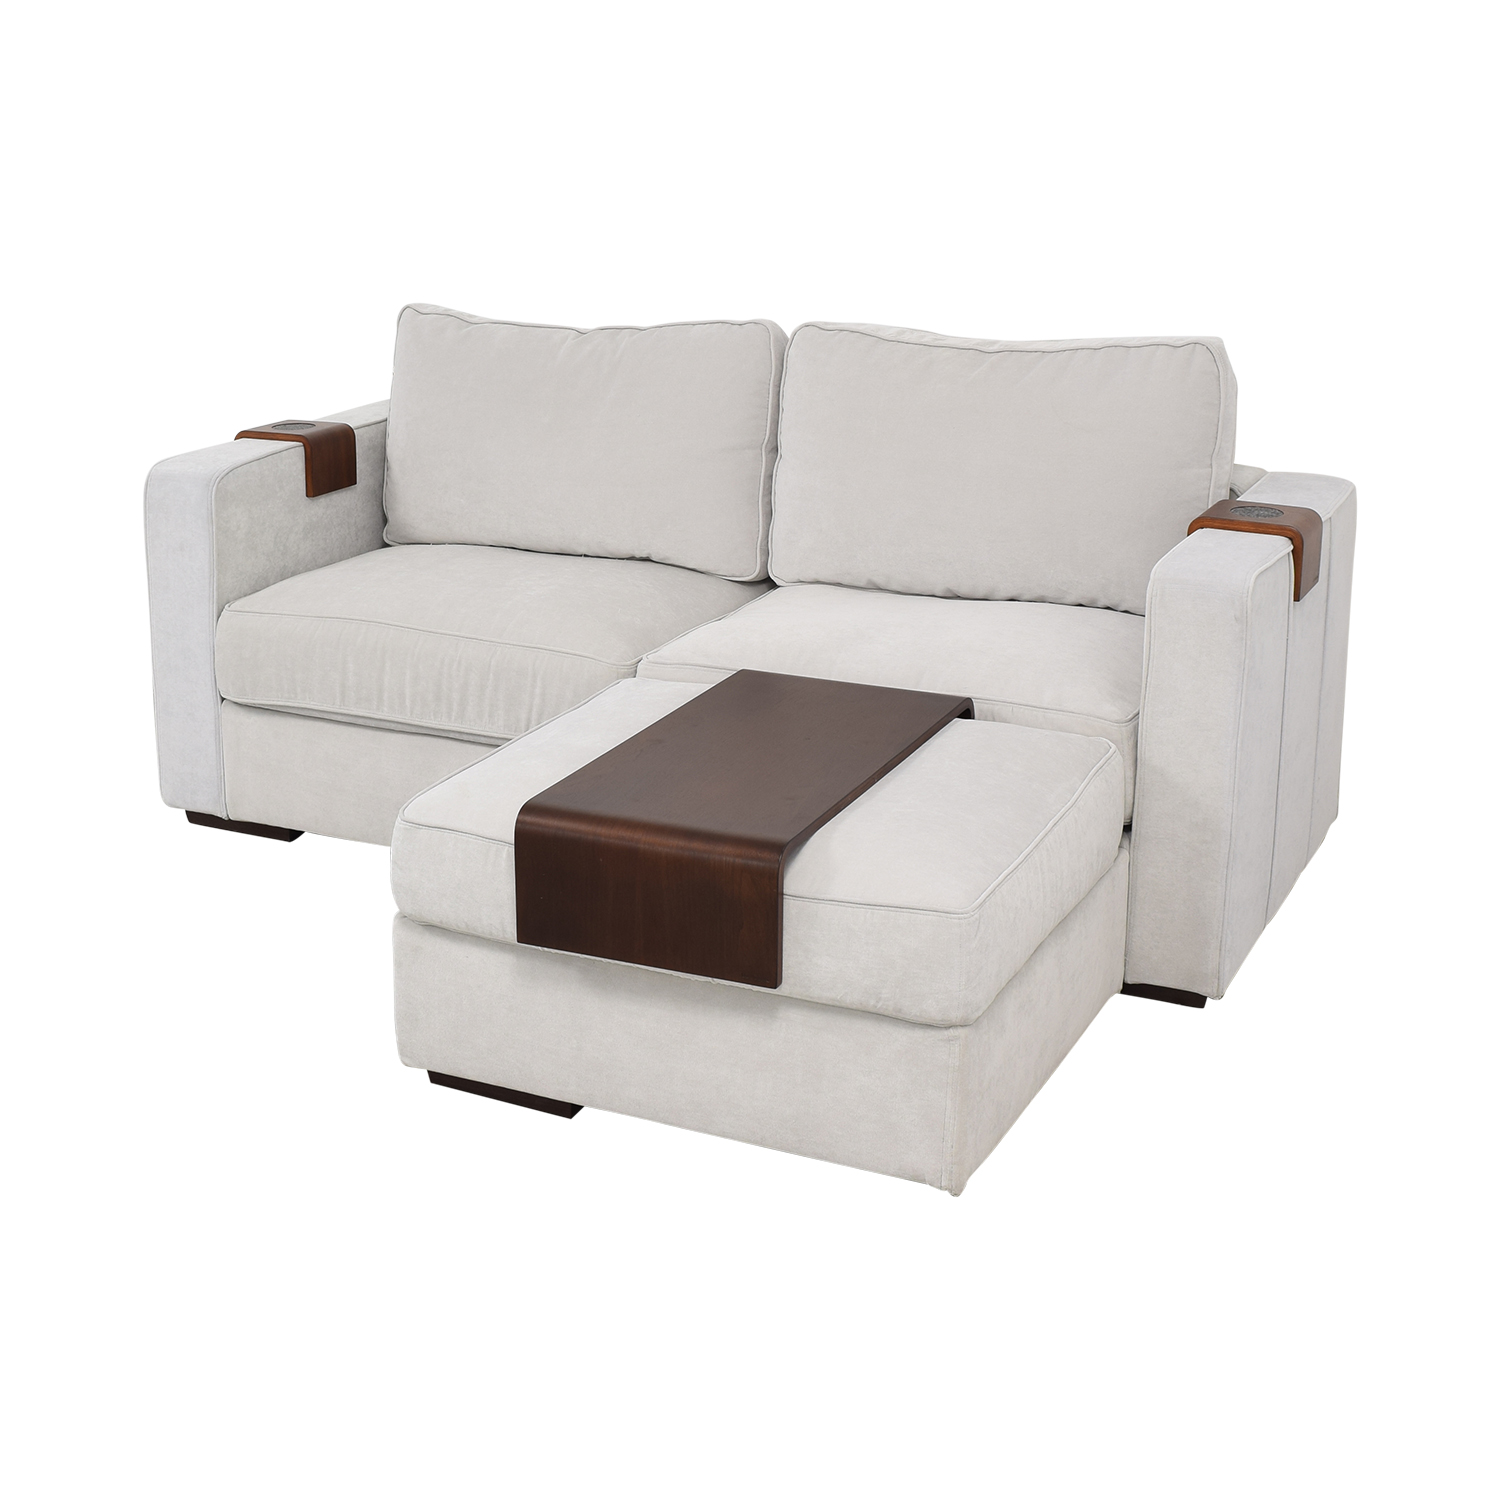 Fabulous 67 Off Lovesac Lovesac Loveseat With Ottoman Sofas Spiritservingveterans Wood Chair Design Ideas Spiritservingveteransorg